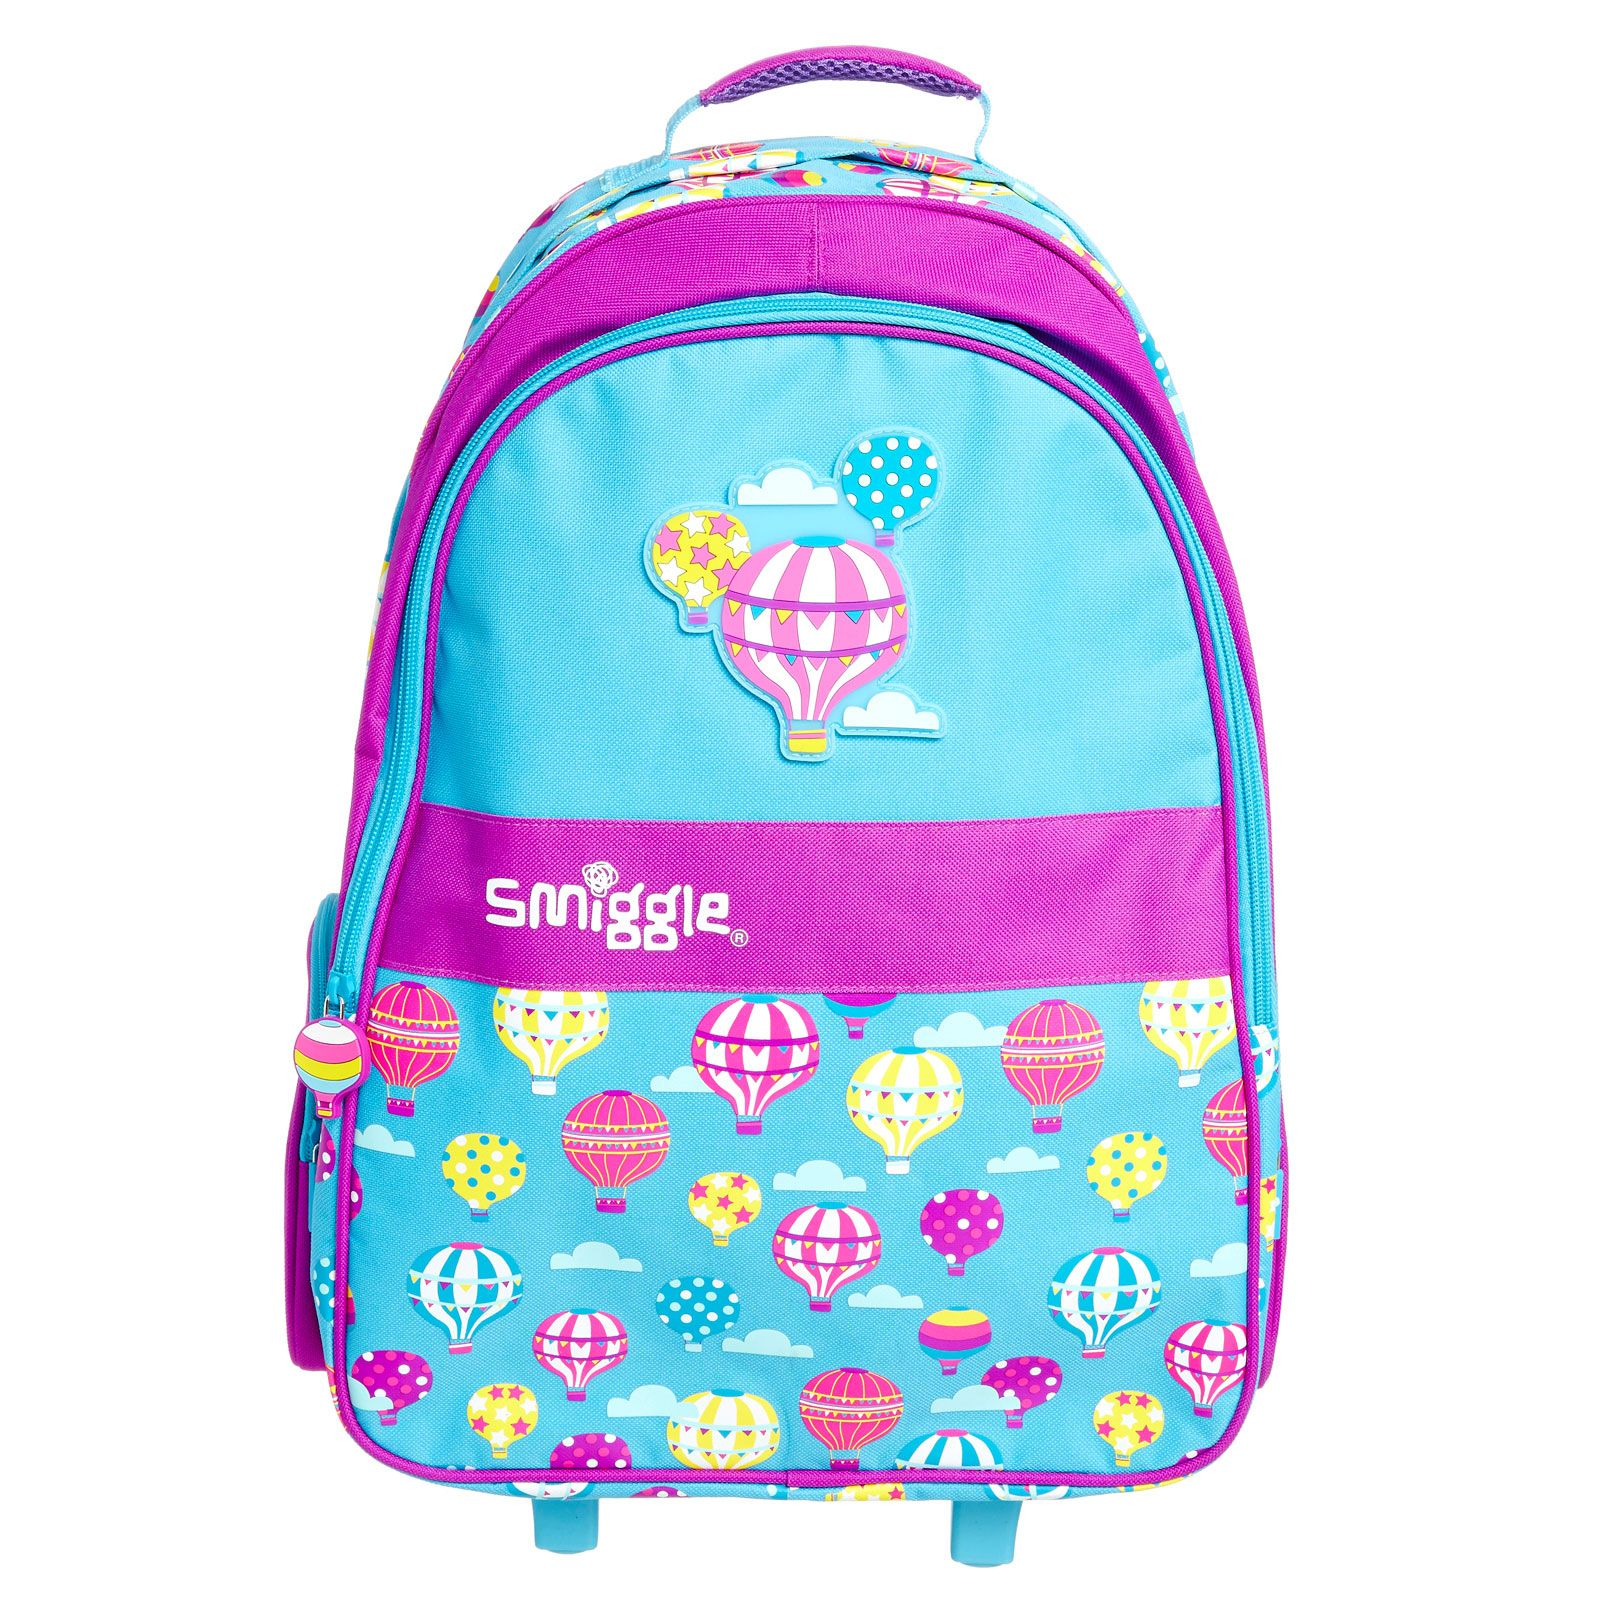 Smiggle bags for school - Image For Light Up Wheels Trolley Backpack From Smiggle Uk